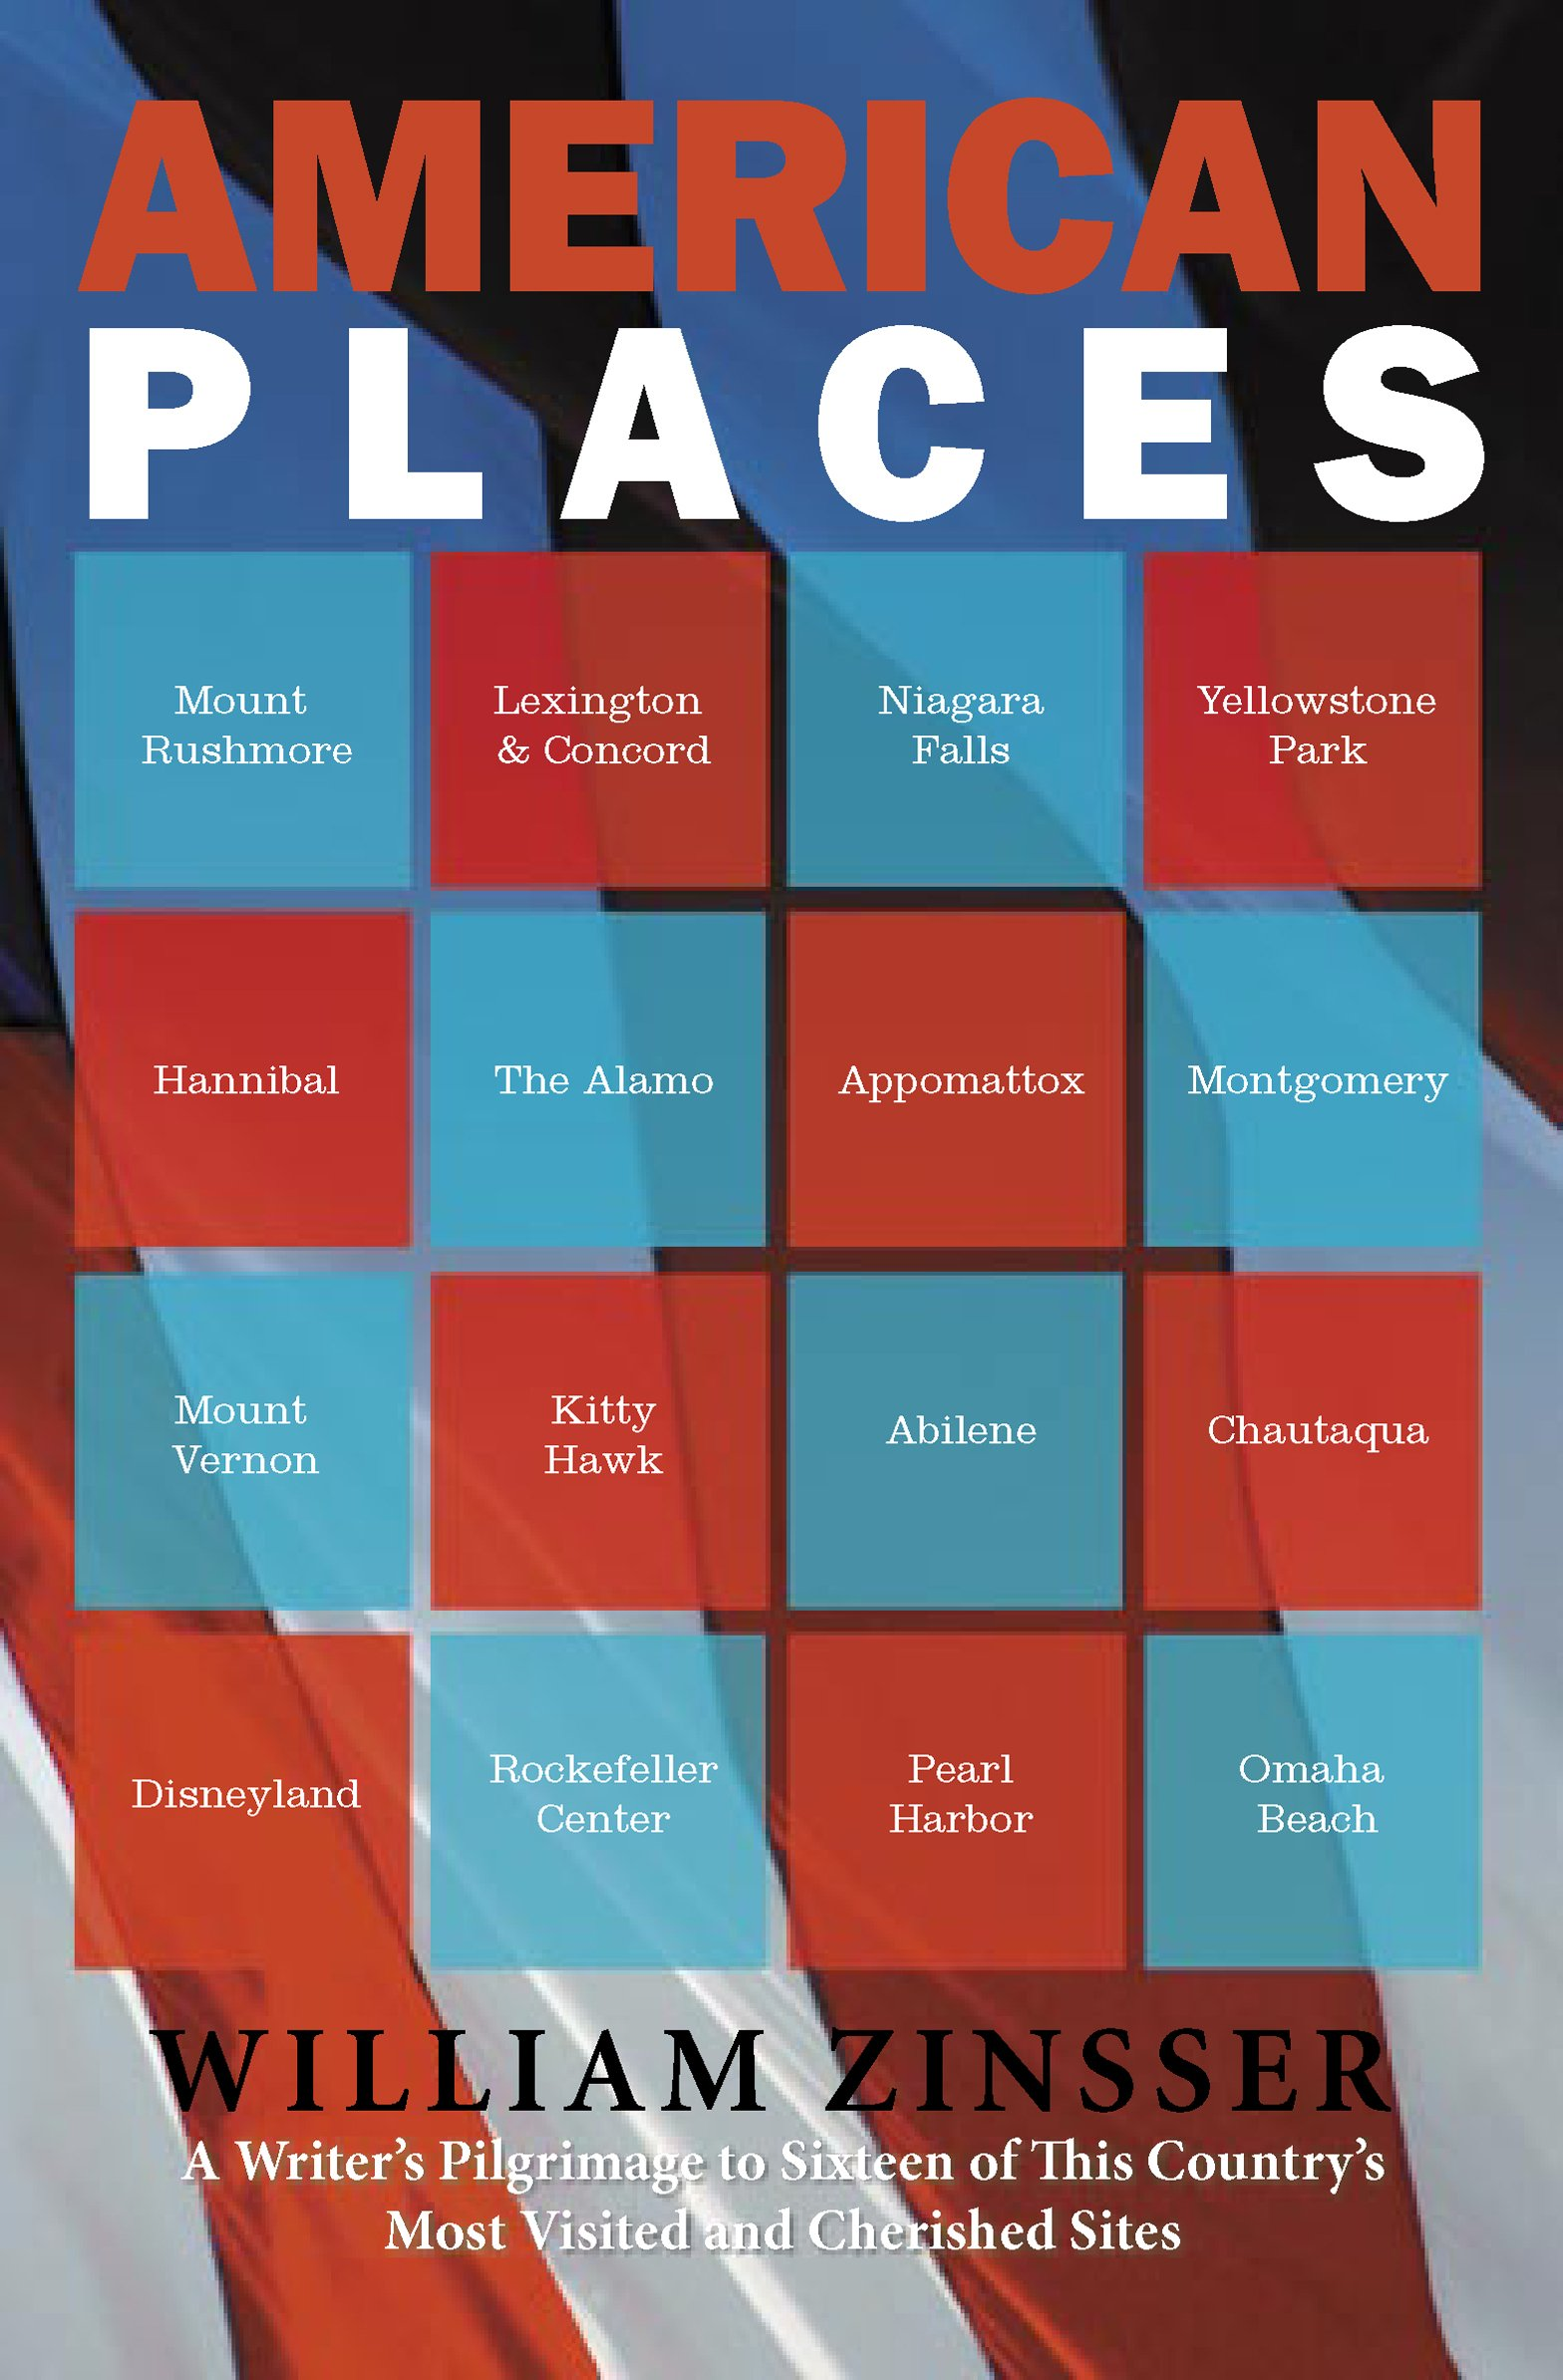 American Places: A Writer's Pilgrimage to 16 of This Country's Most Visited and Cherished Sites pdf